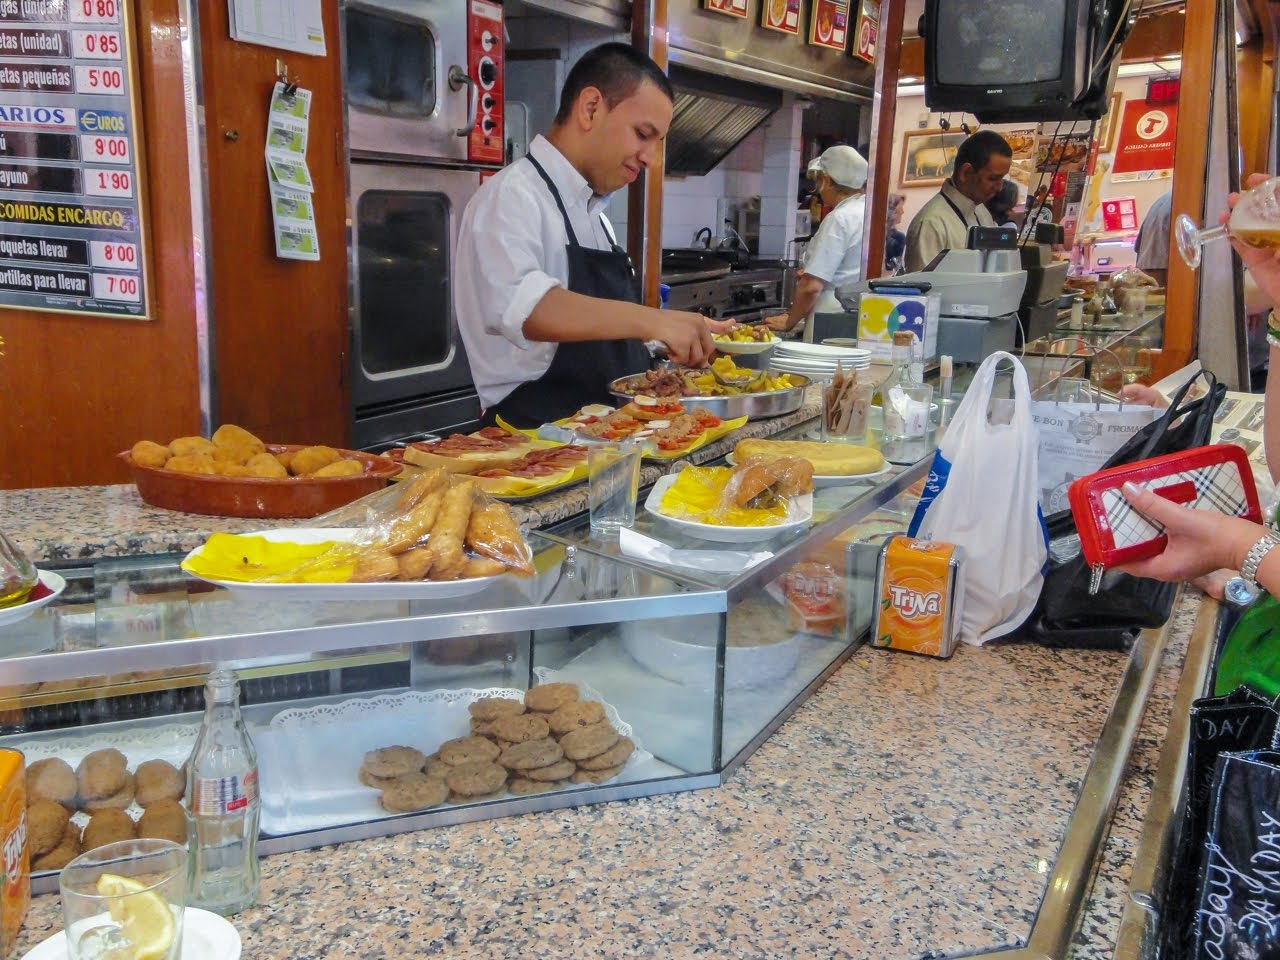 A restaurant inside the market offers a variety of tapas